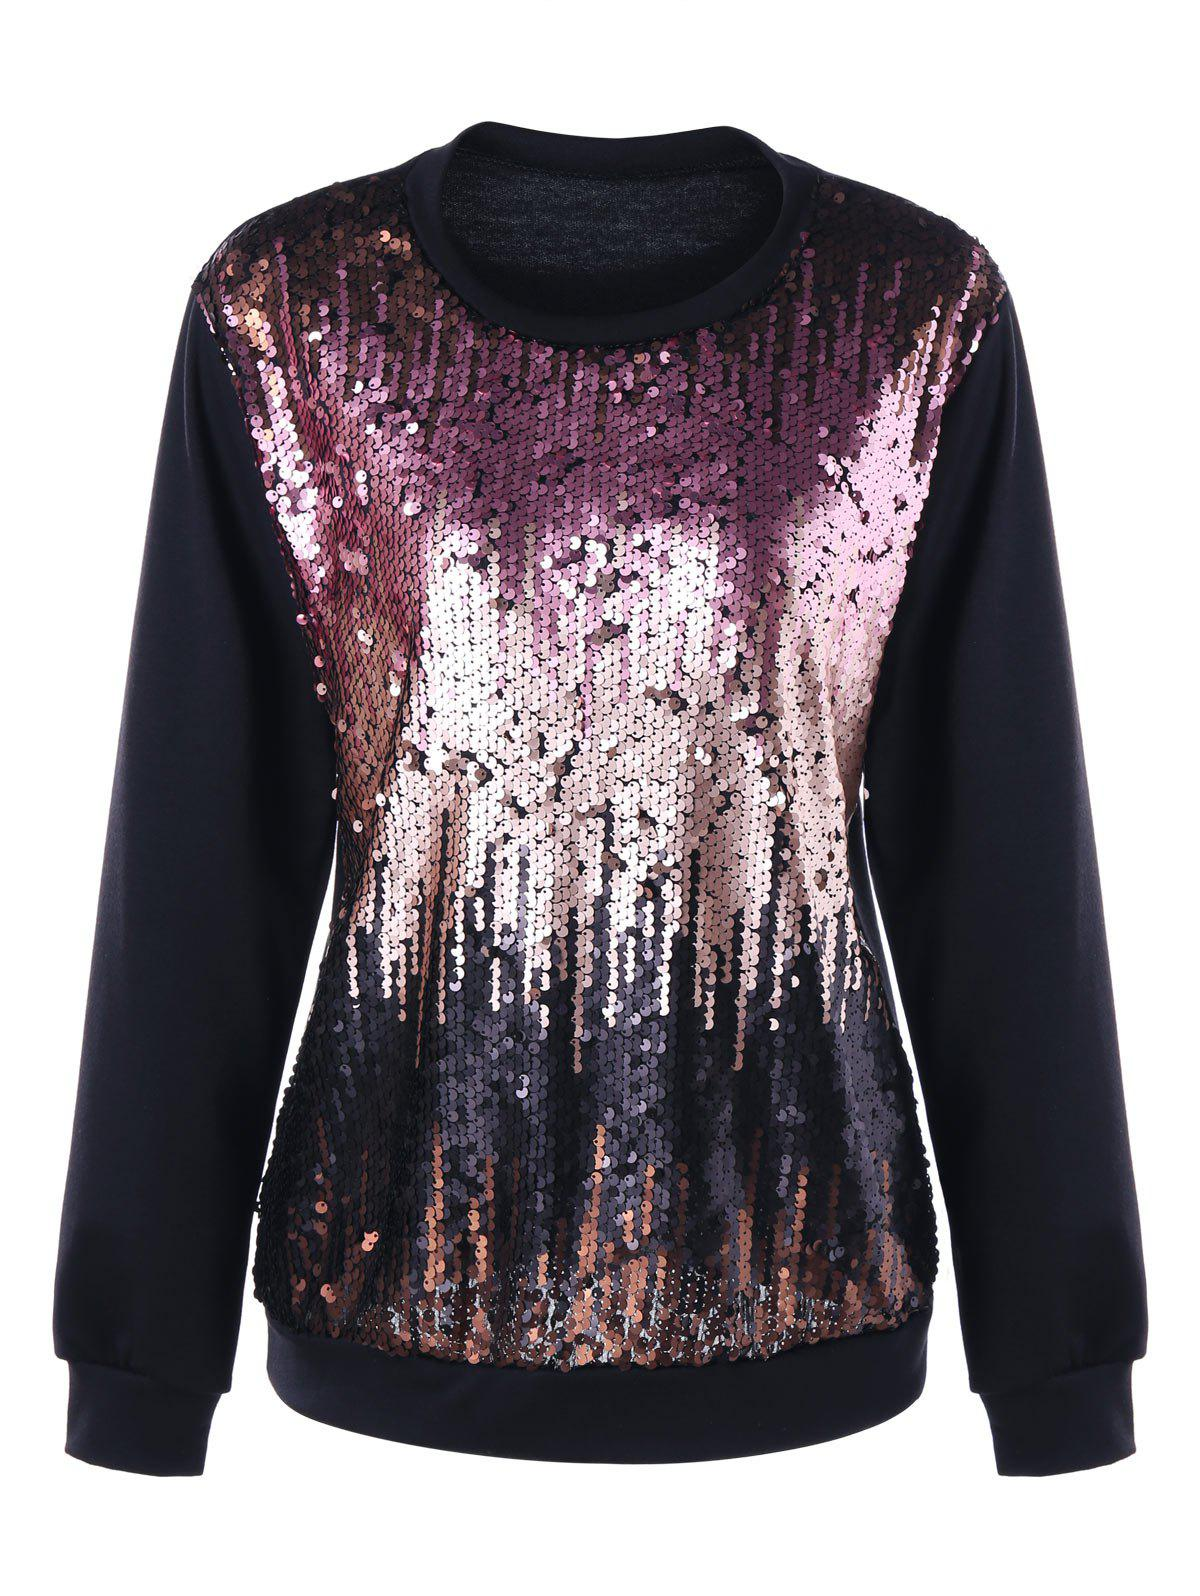 Plus Size Gradient Color Sequined SweatshirtWOMEN<br><br>Size: 3XL; Color: PINK; Material: Polyester,Spandex; Shirt Length: Regular; Sleeve Length: Full; Style: Fashion; Pattern Style: Solid; Season: Fall,Spring; Weight: 0.3400kg; Package Contents: 1 x Sweatshirt;